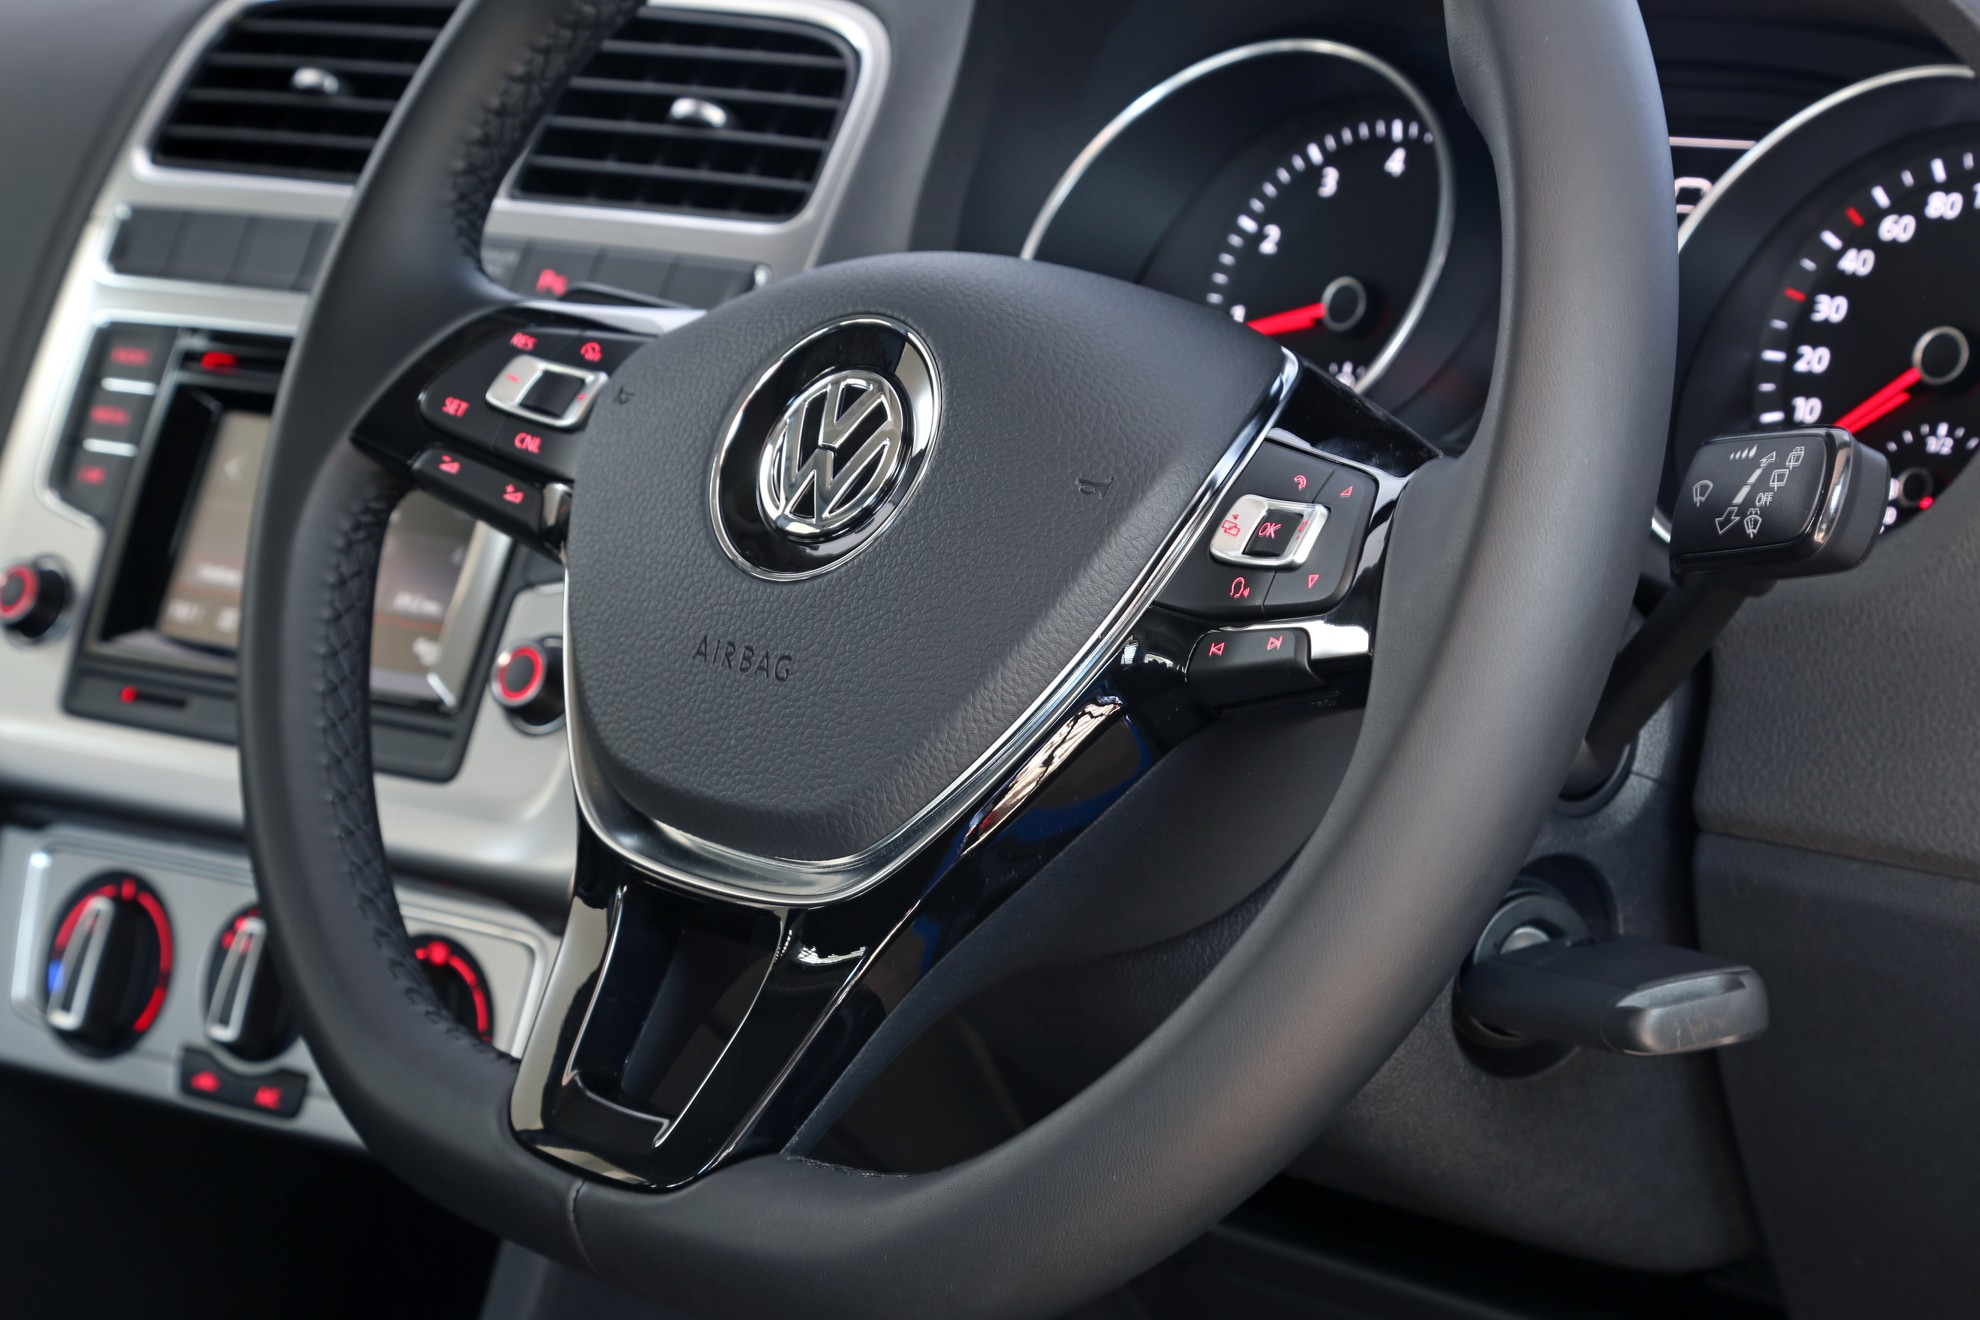 Volkswagen_Polo-Interior